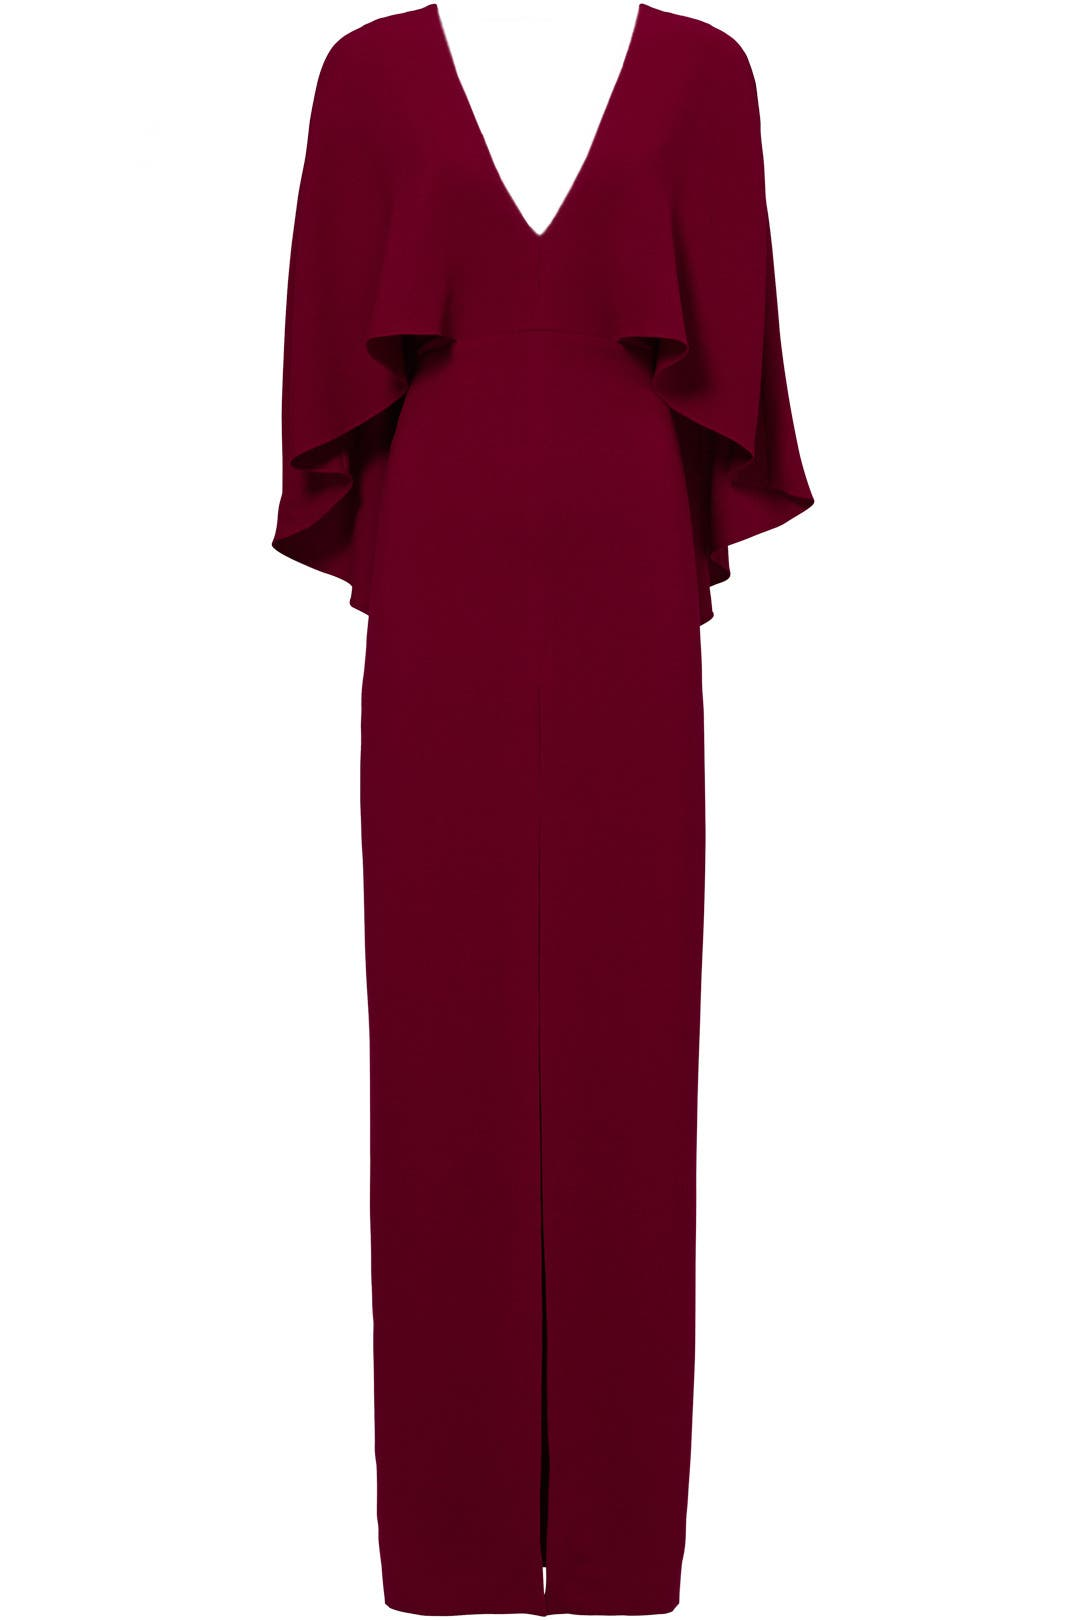 Rent the runway long red dress